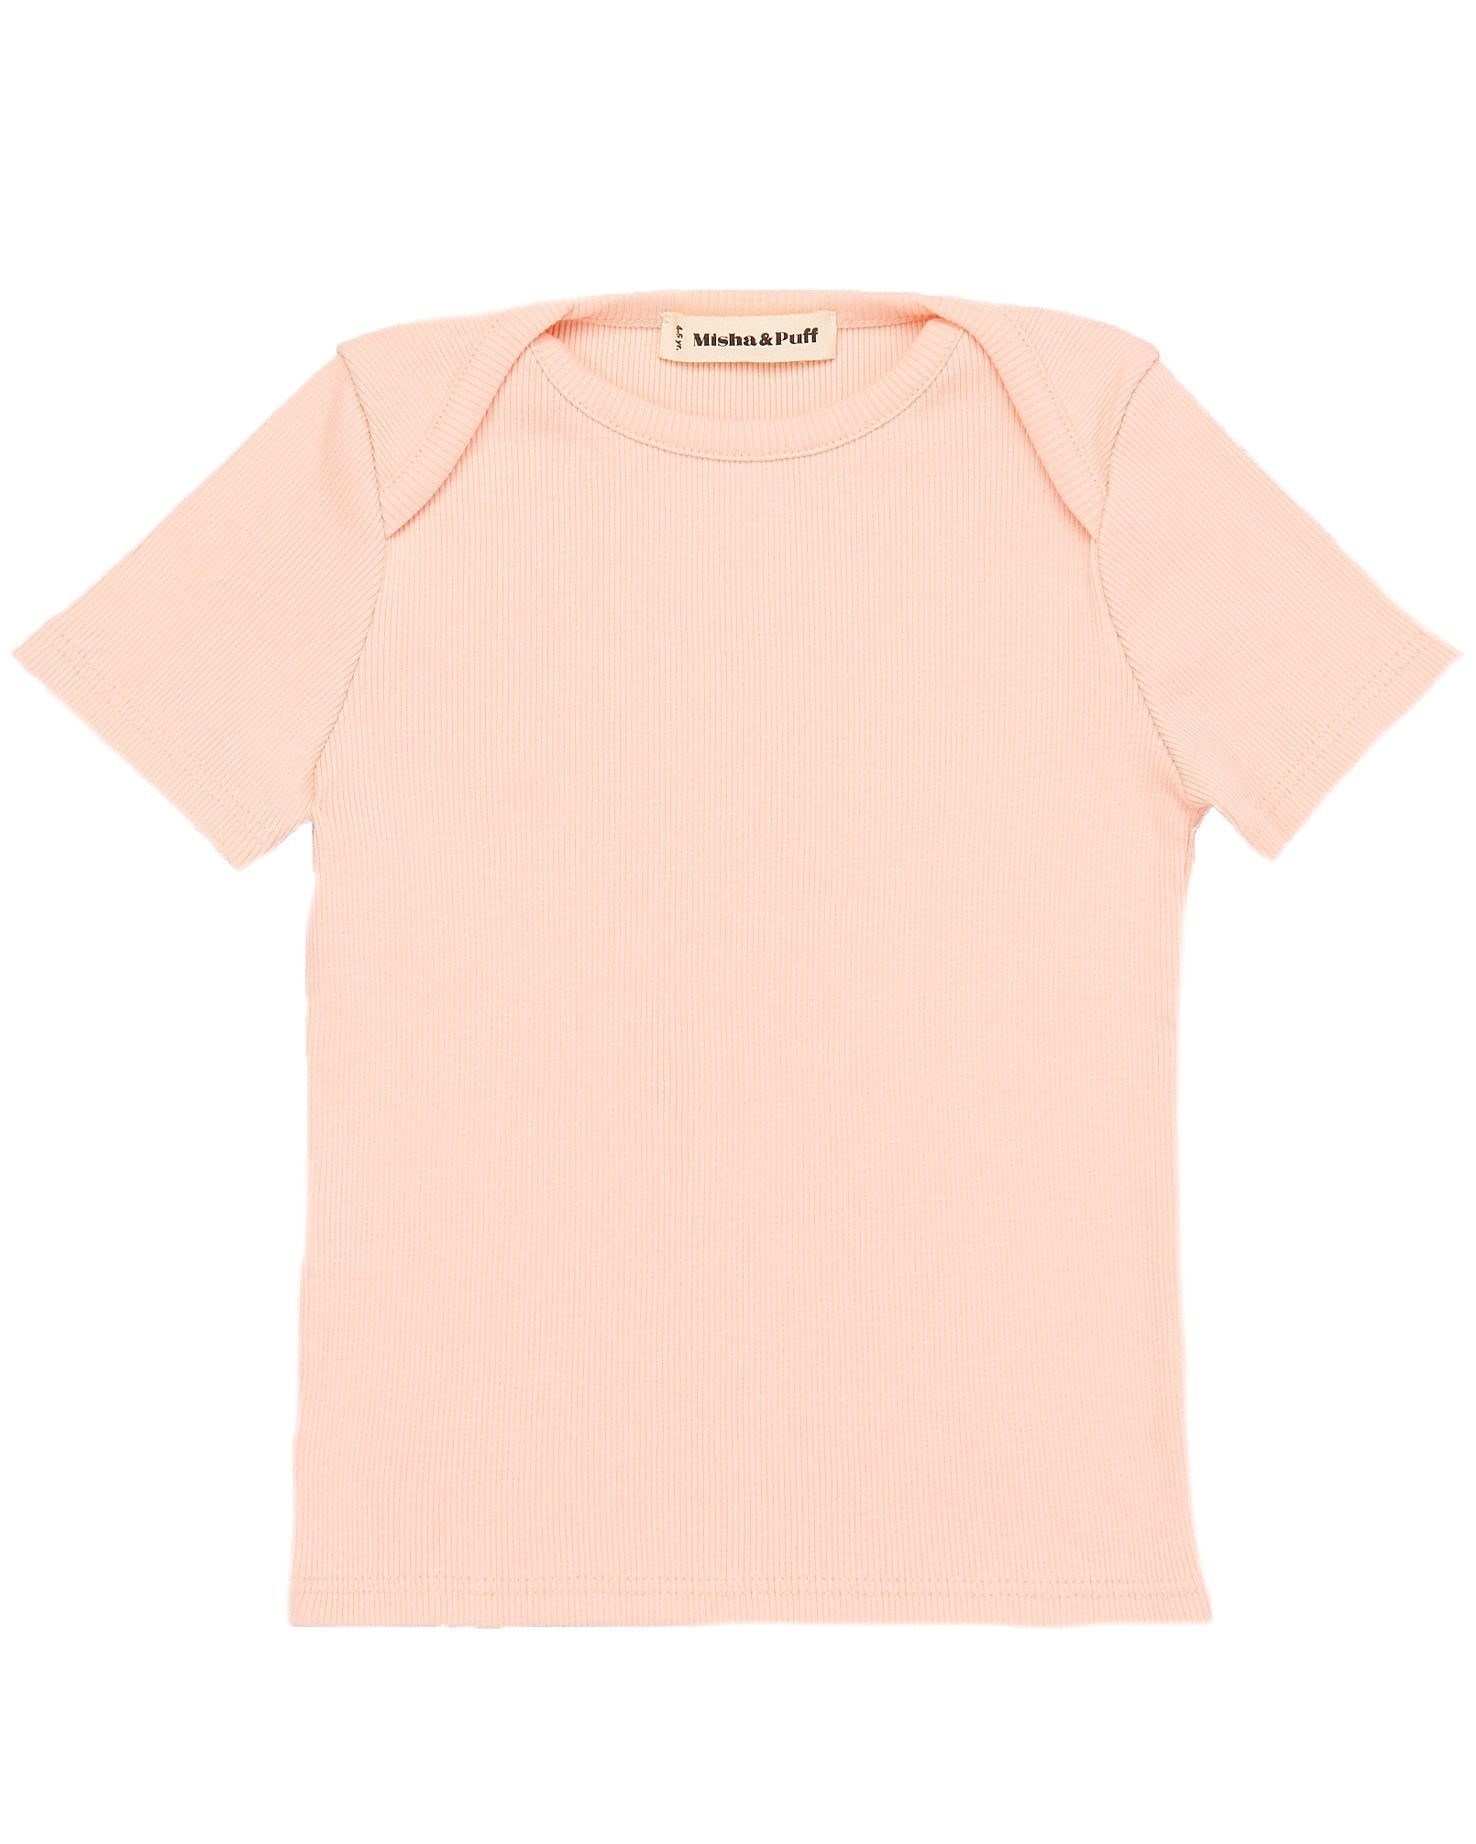 Little misha + puff baby girl ribbed slim tee in petal